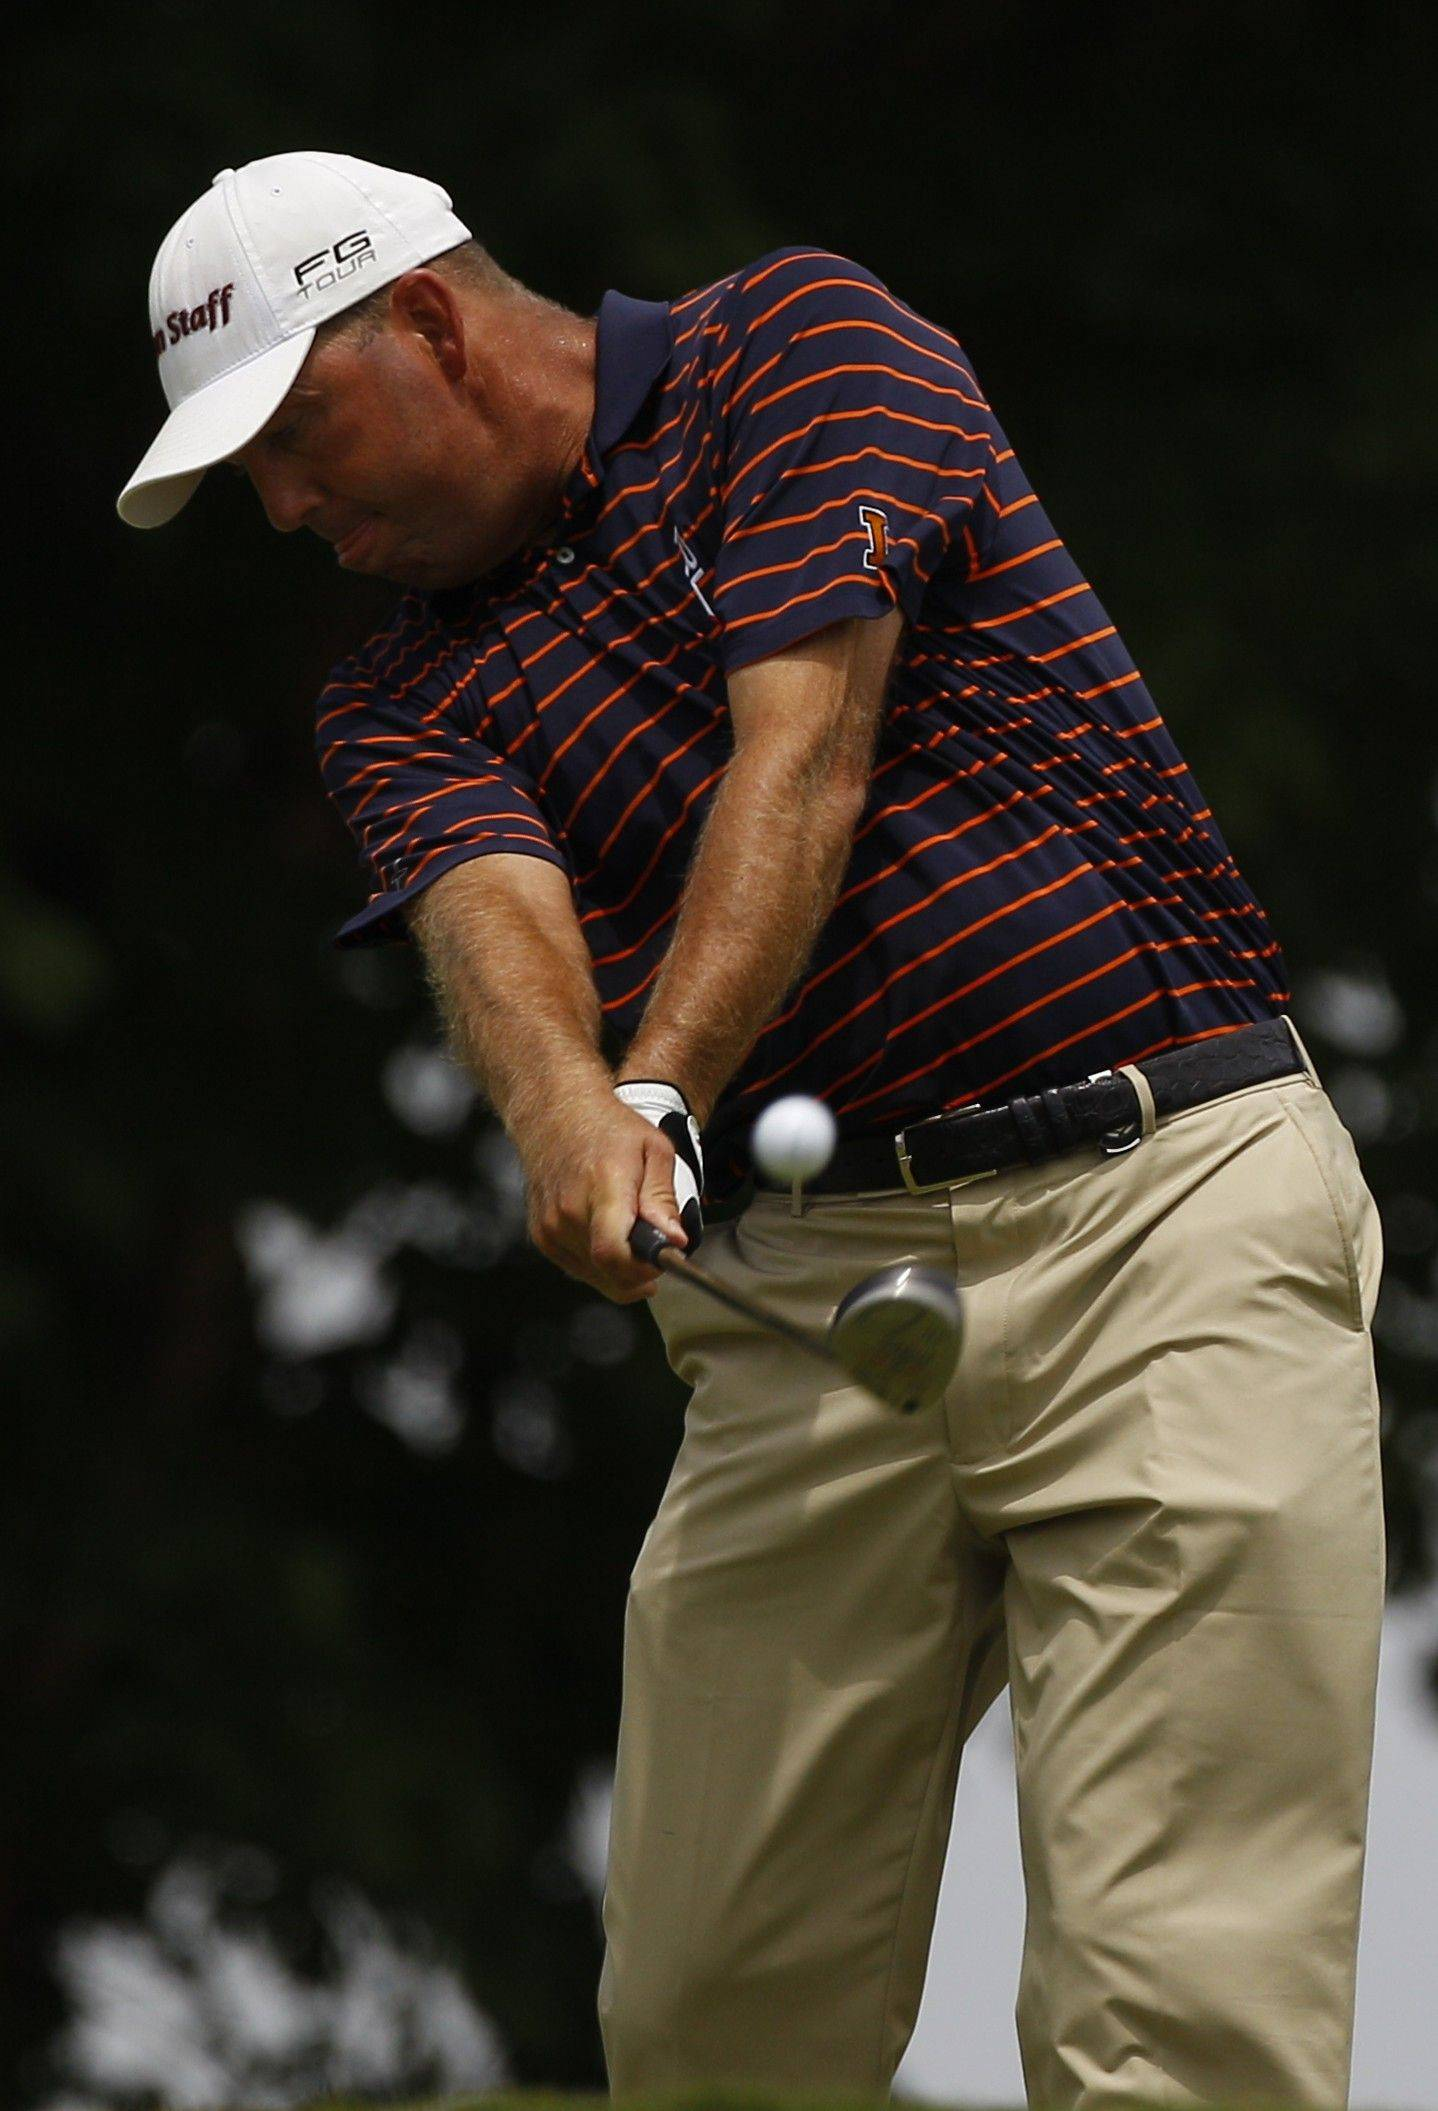 Mike Small hits a drive on the 10th hole during the first round of the PGA Championship at the Atlanta Athletic Club in Johns Creek, Ga. Next week Small returns to defend his Illinois PGA title, which he has won eight straight years.